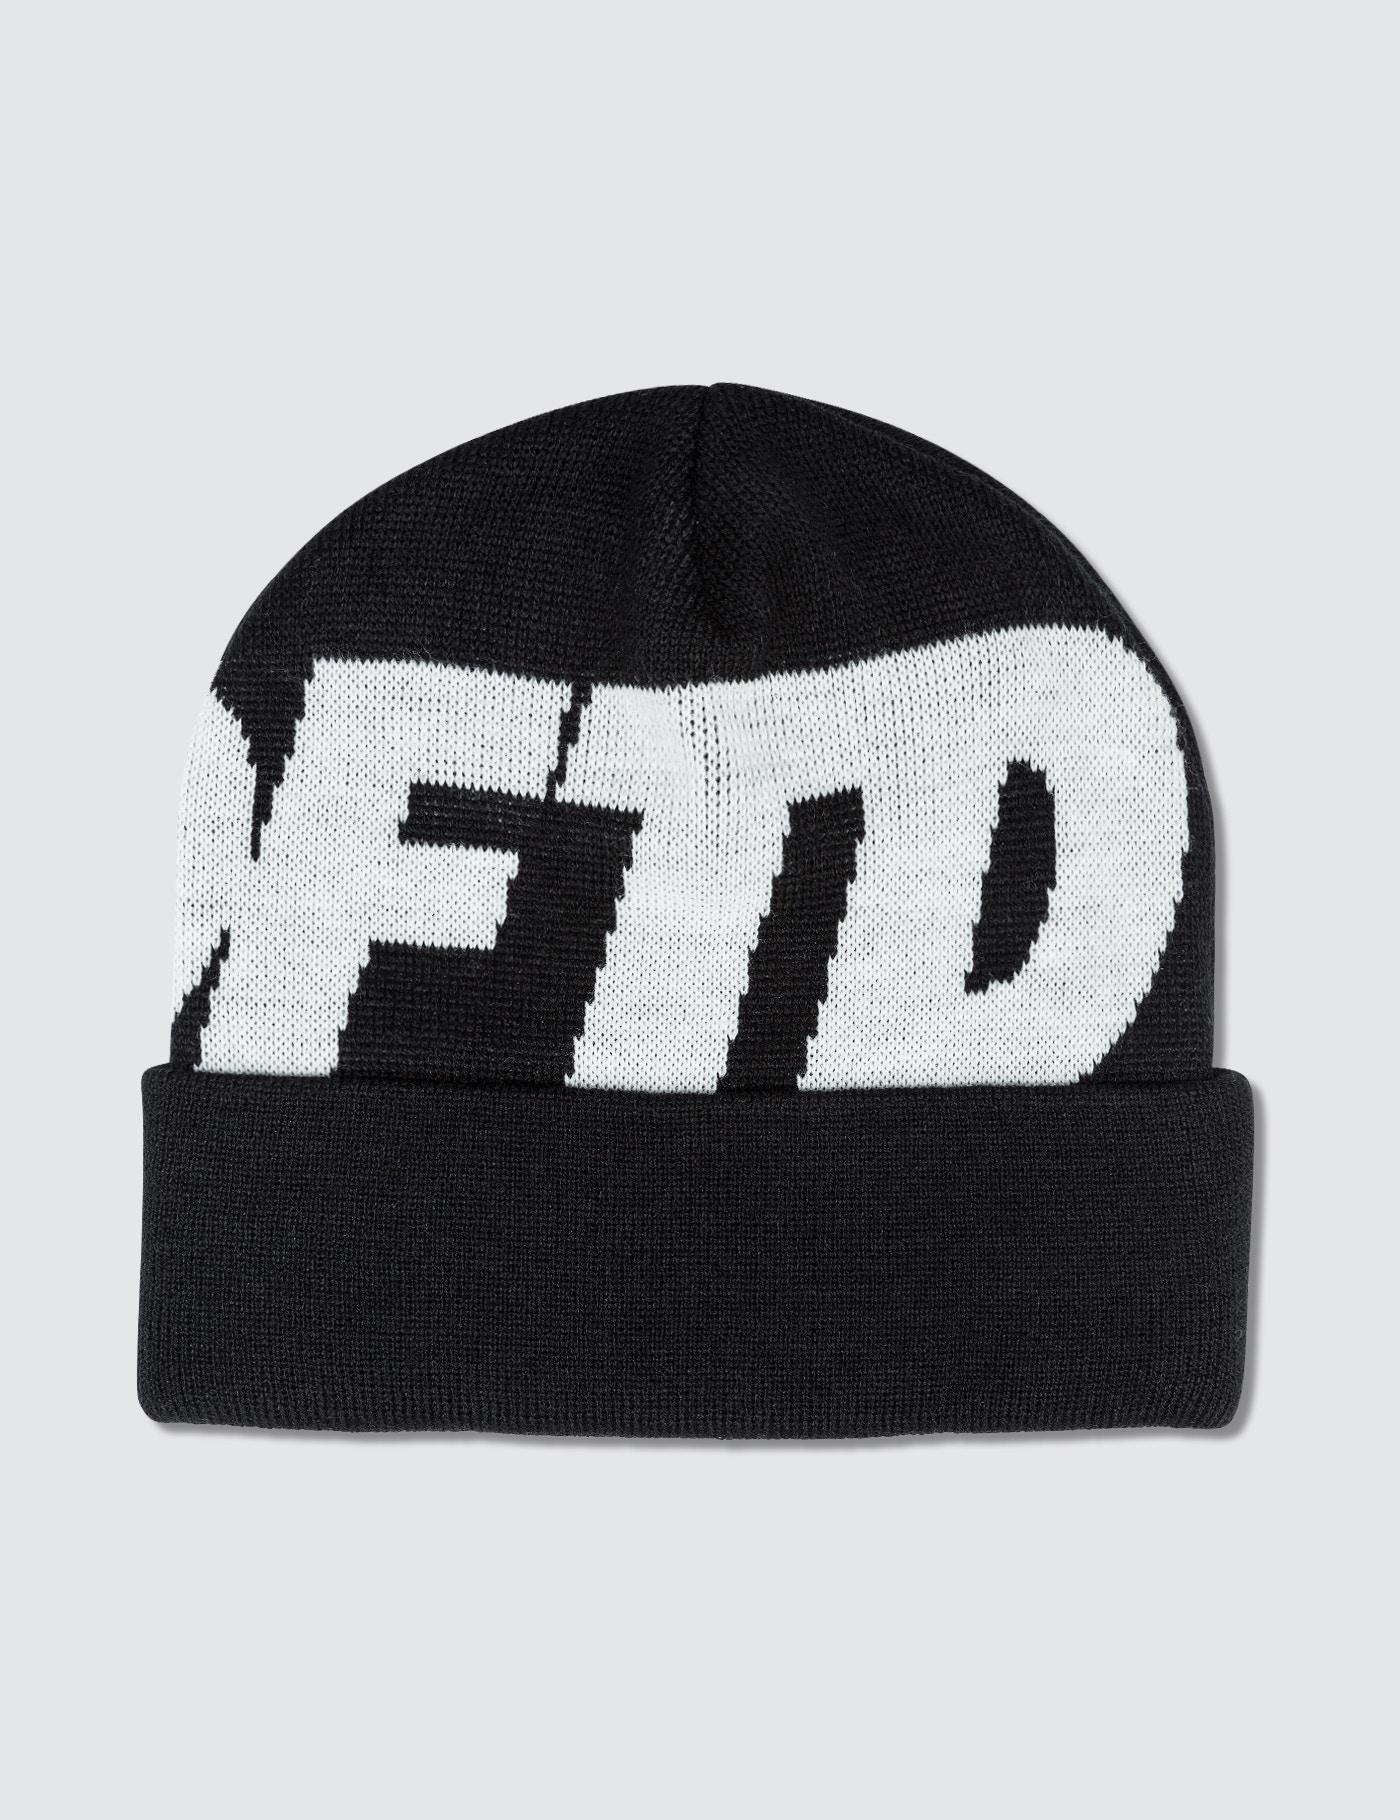 b4e3875d4f0 Lyst - Undefeated Undftd Logo Beanie in Black for Men